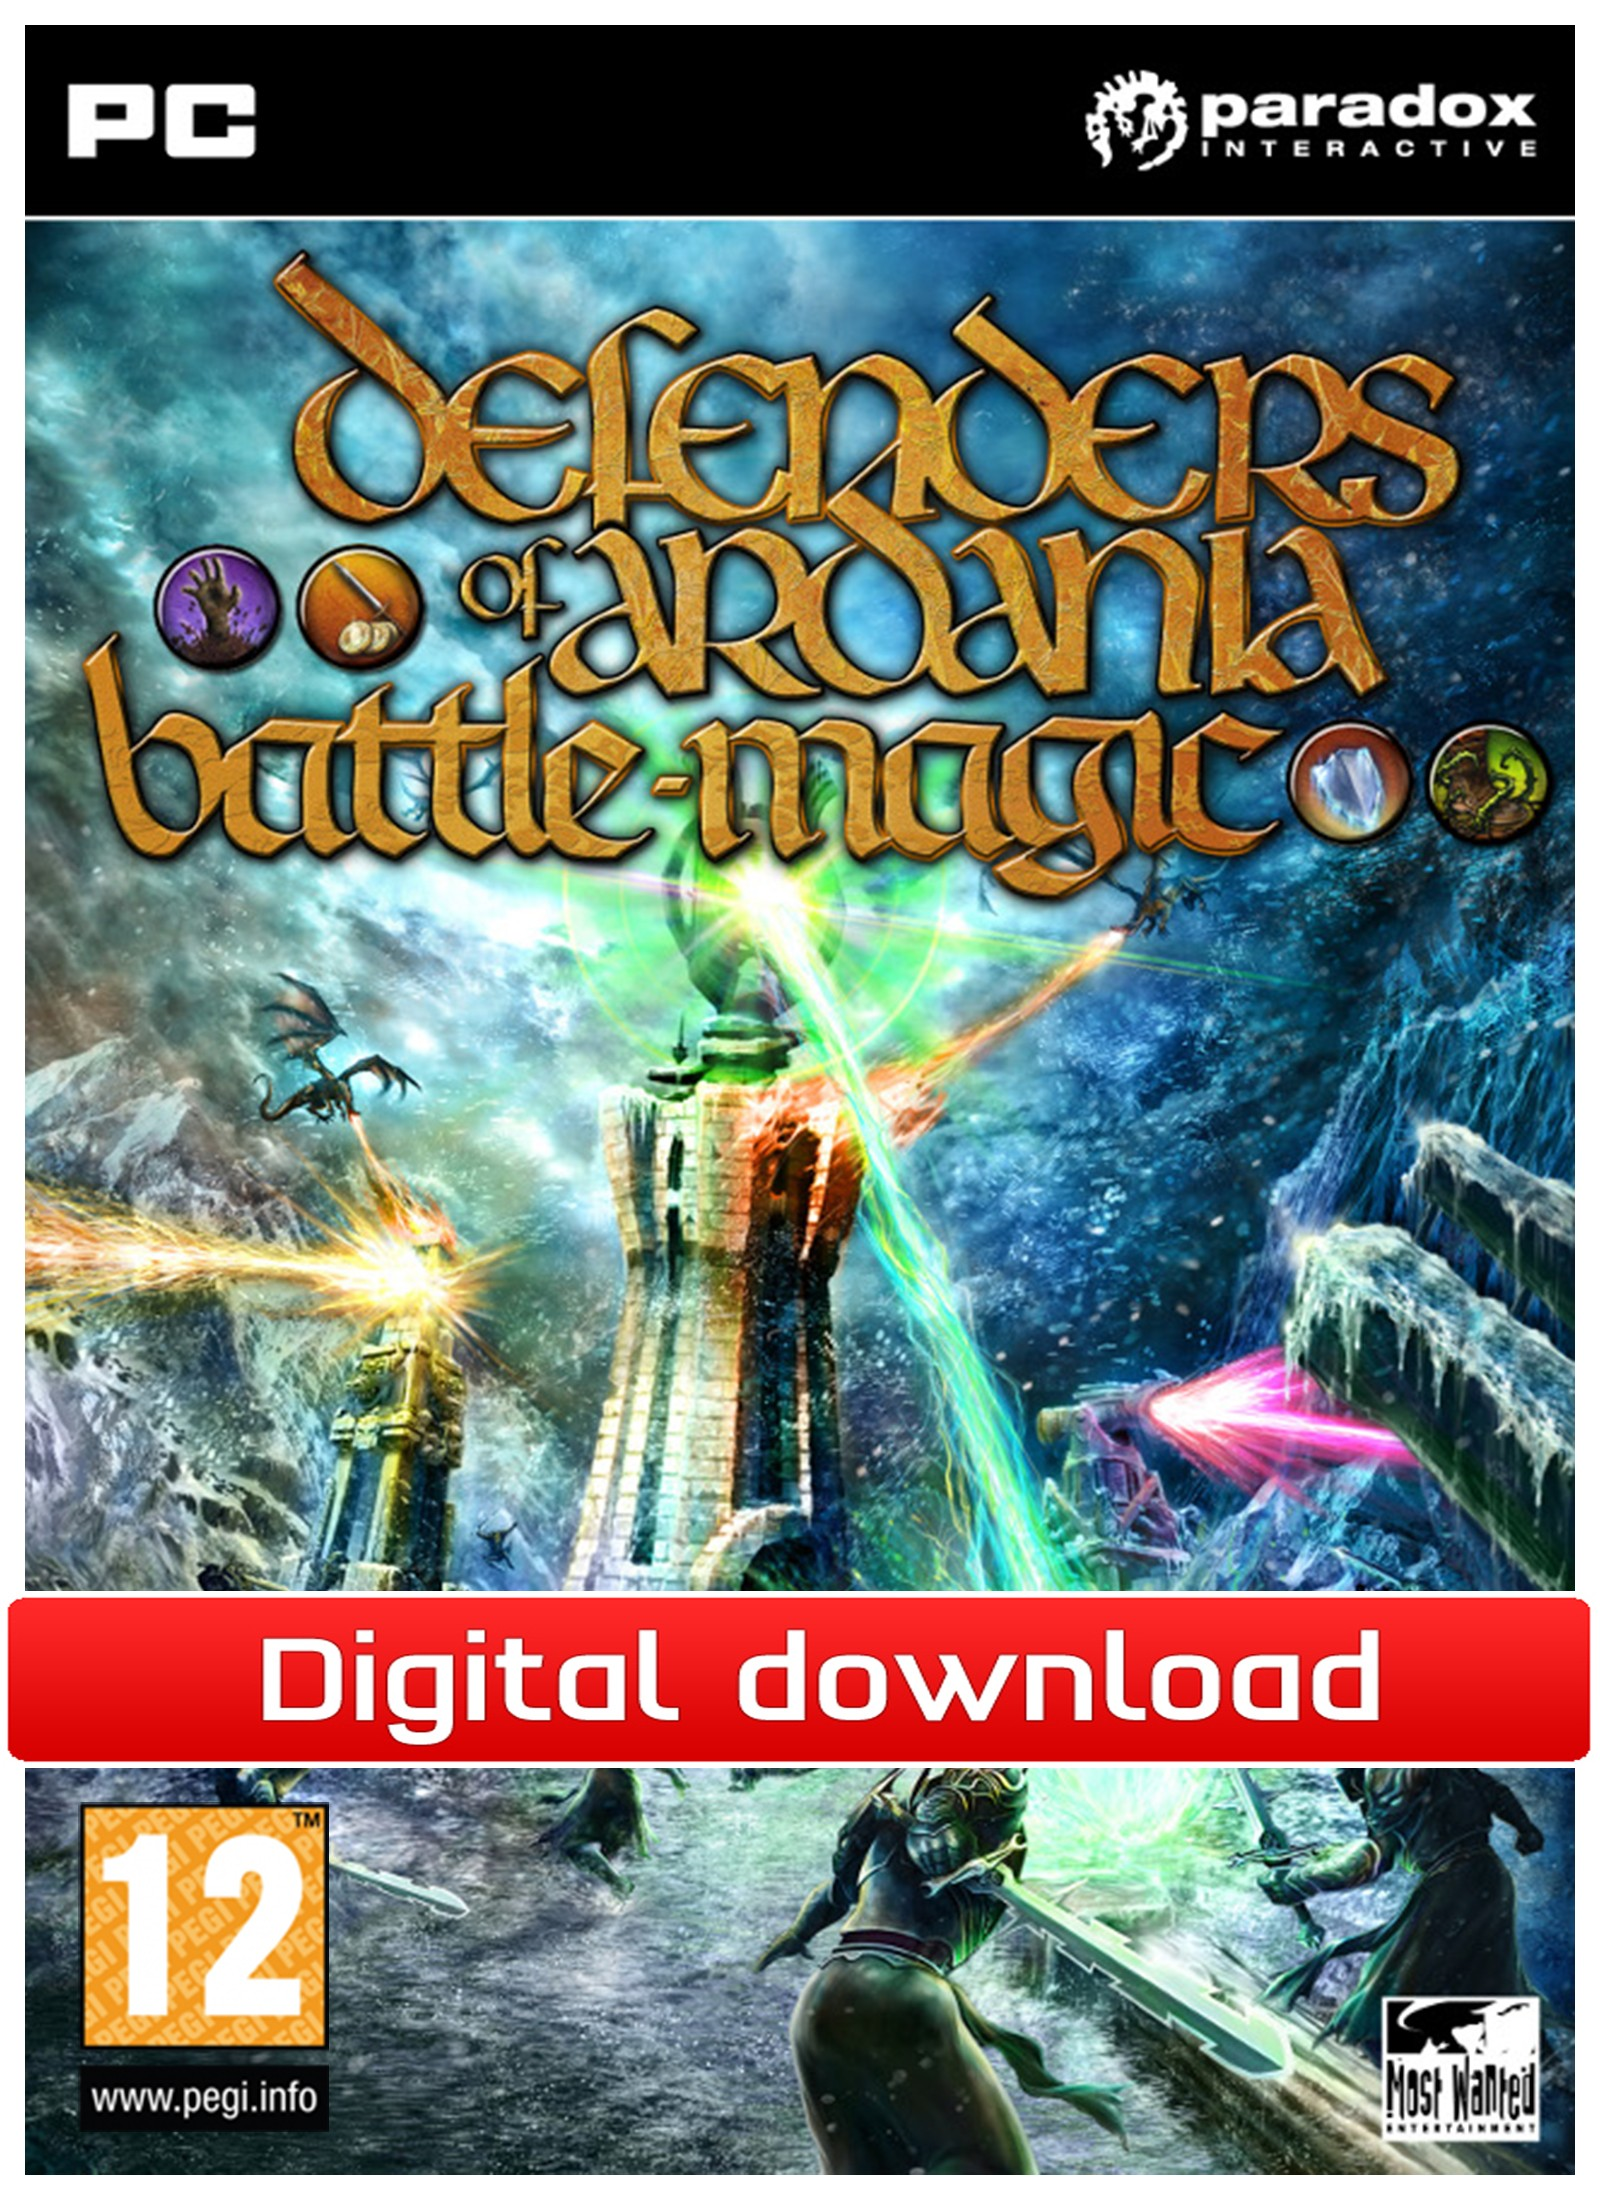 29500 : Defenders of Ardania: Battlemagic DLC (PC nedlastning)